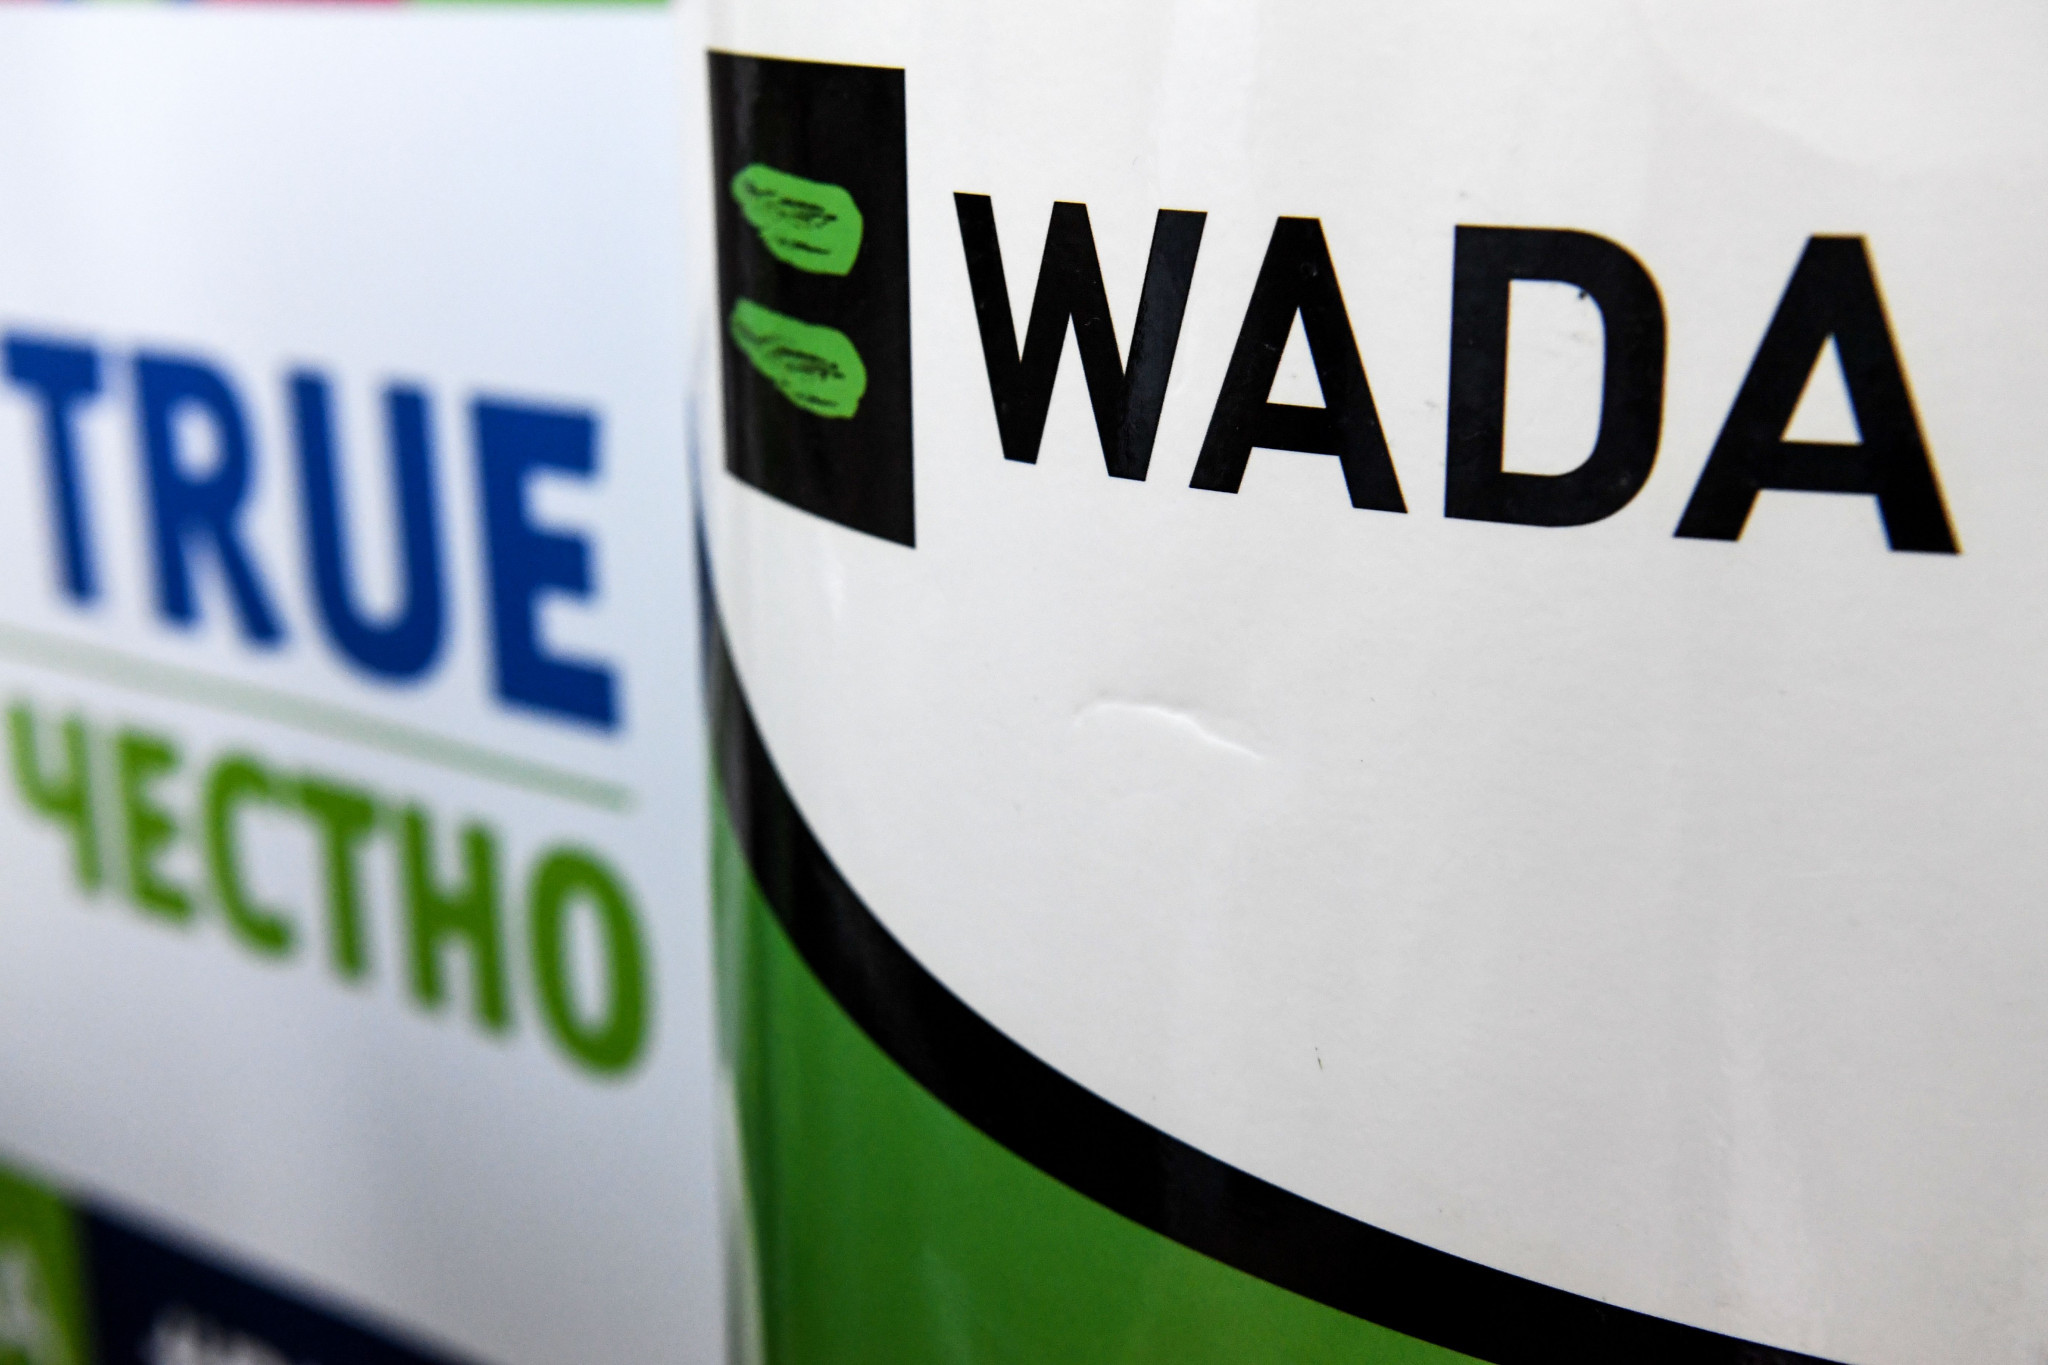 WADA is now confident the Salt Lake City laboratory is